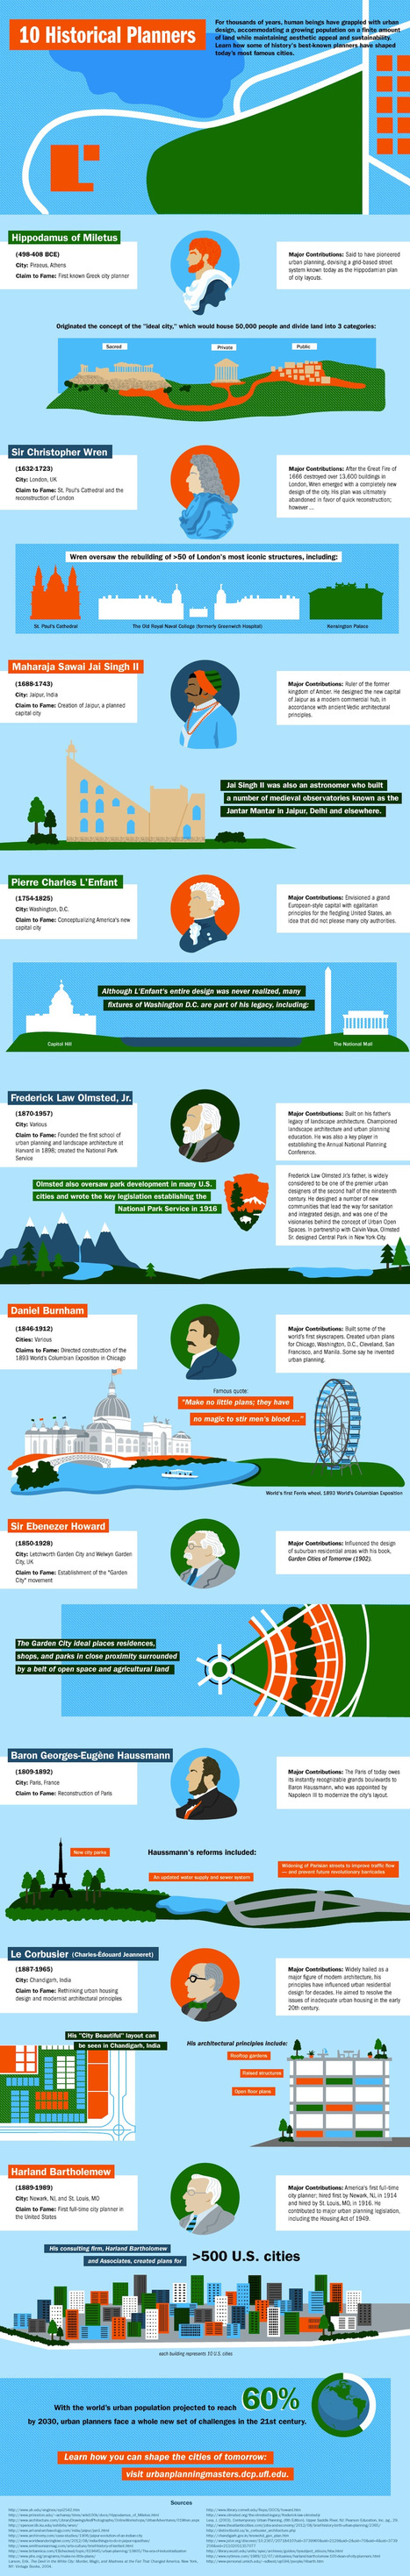 Infographic: How 10 Historical Planners Have Shaped Today's Cities | green infographics | Scoop.it